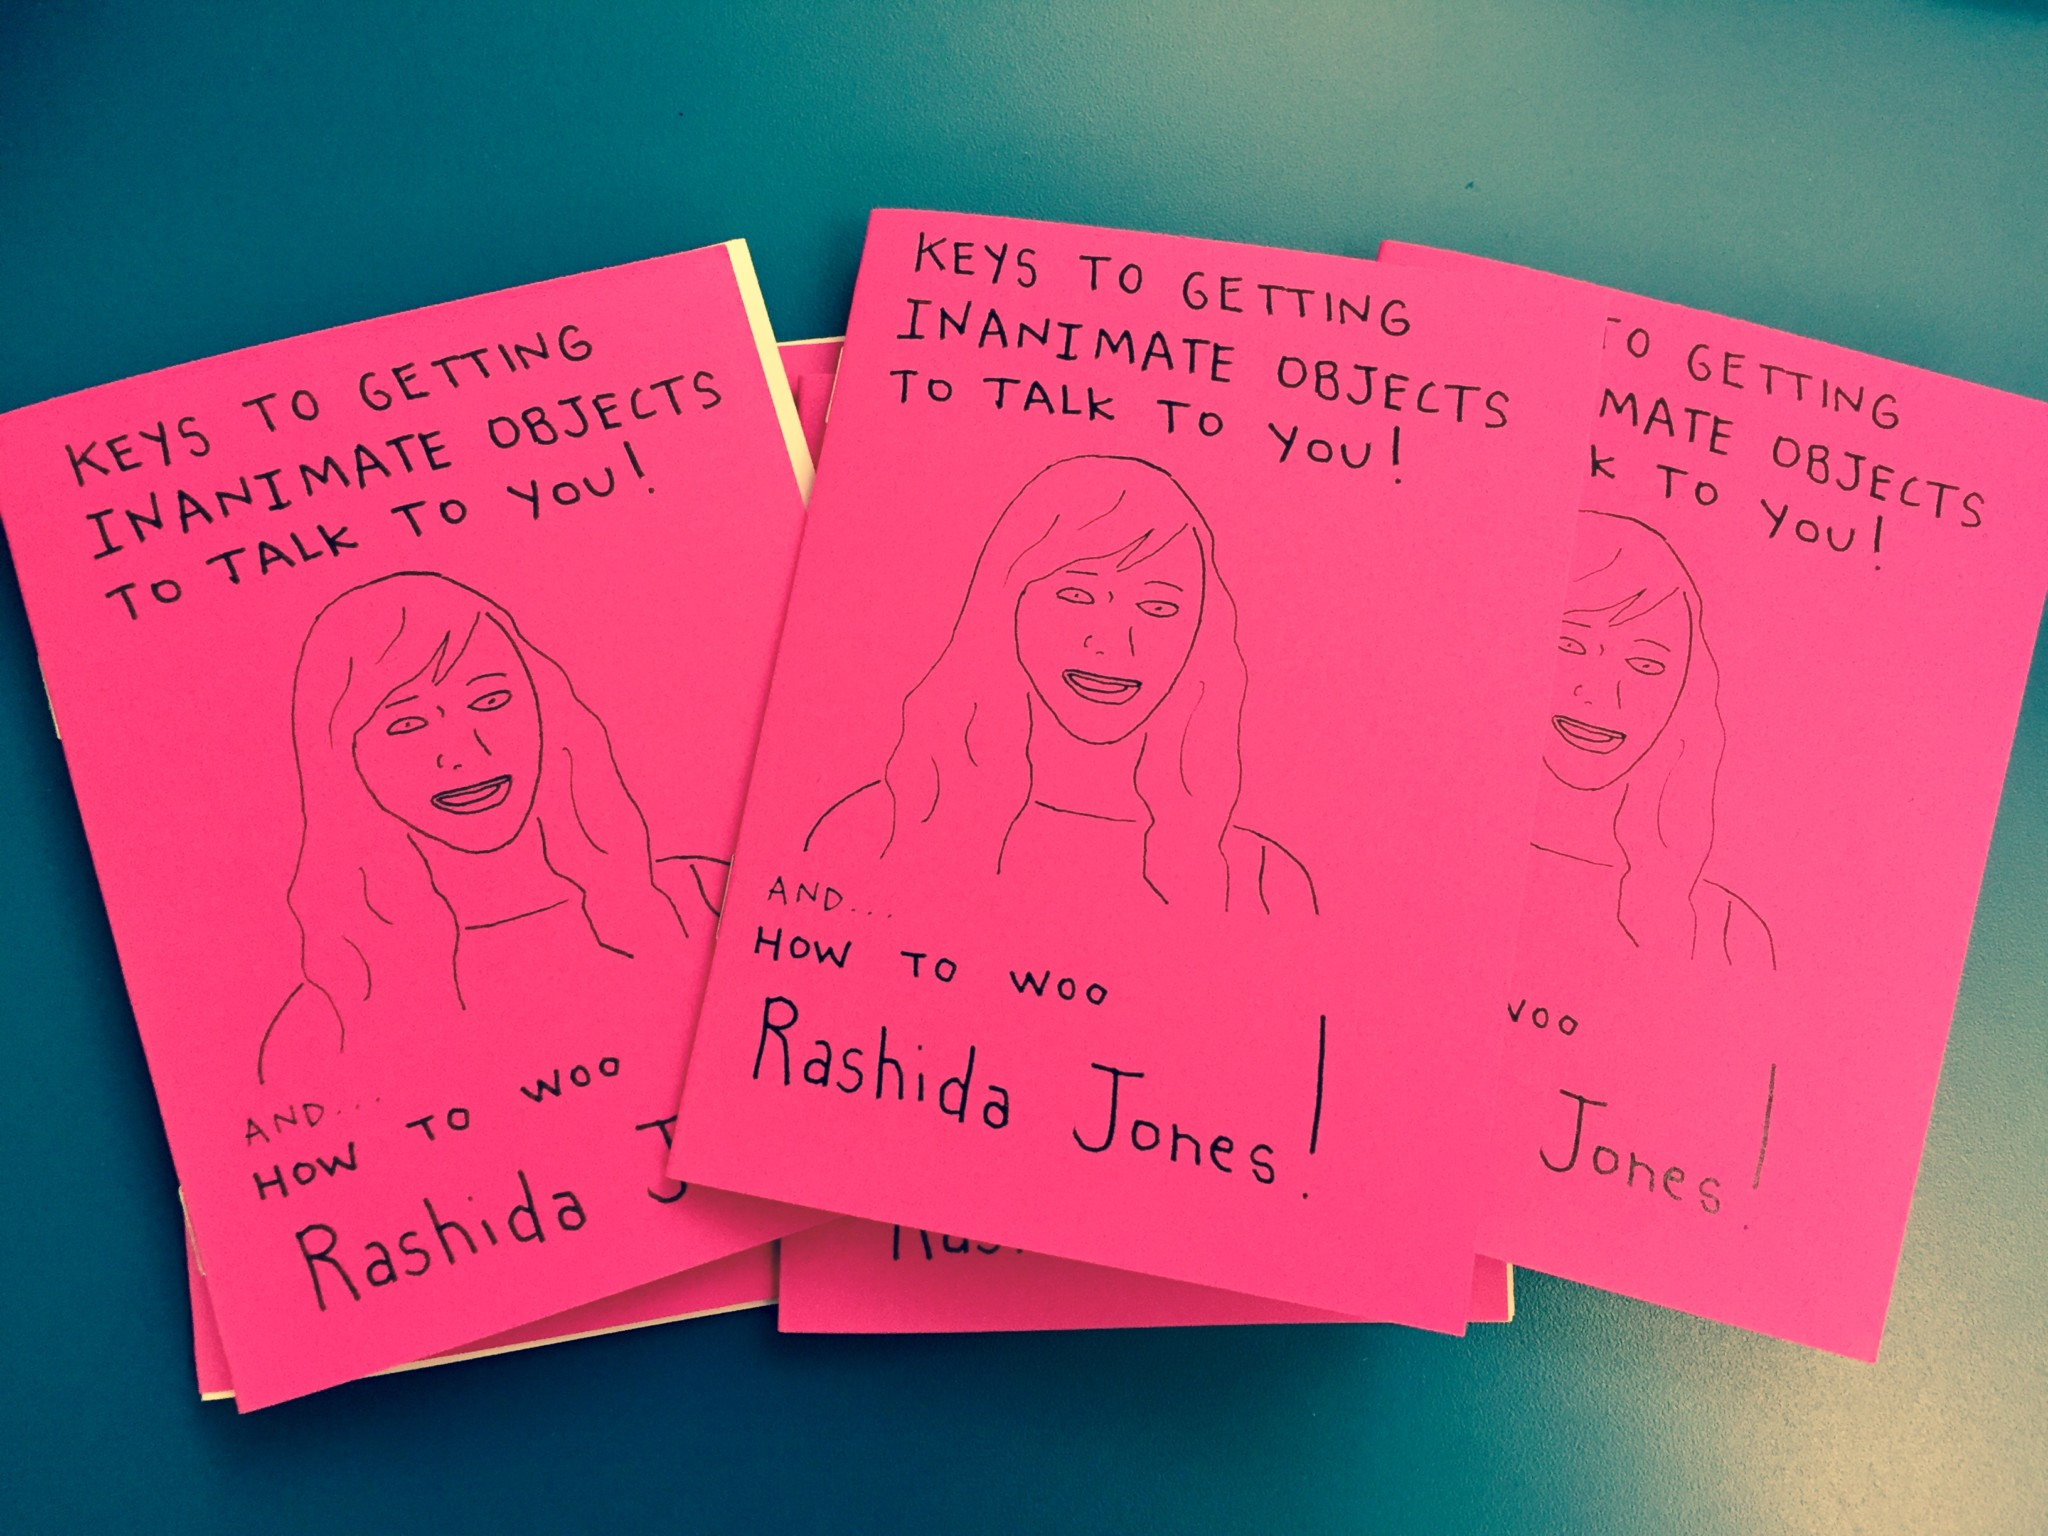 How to Woo Rashida Jones